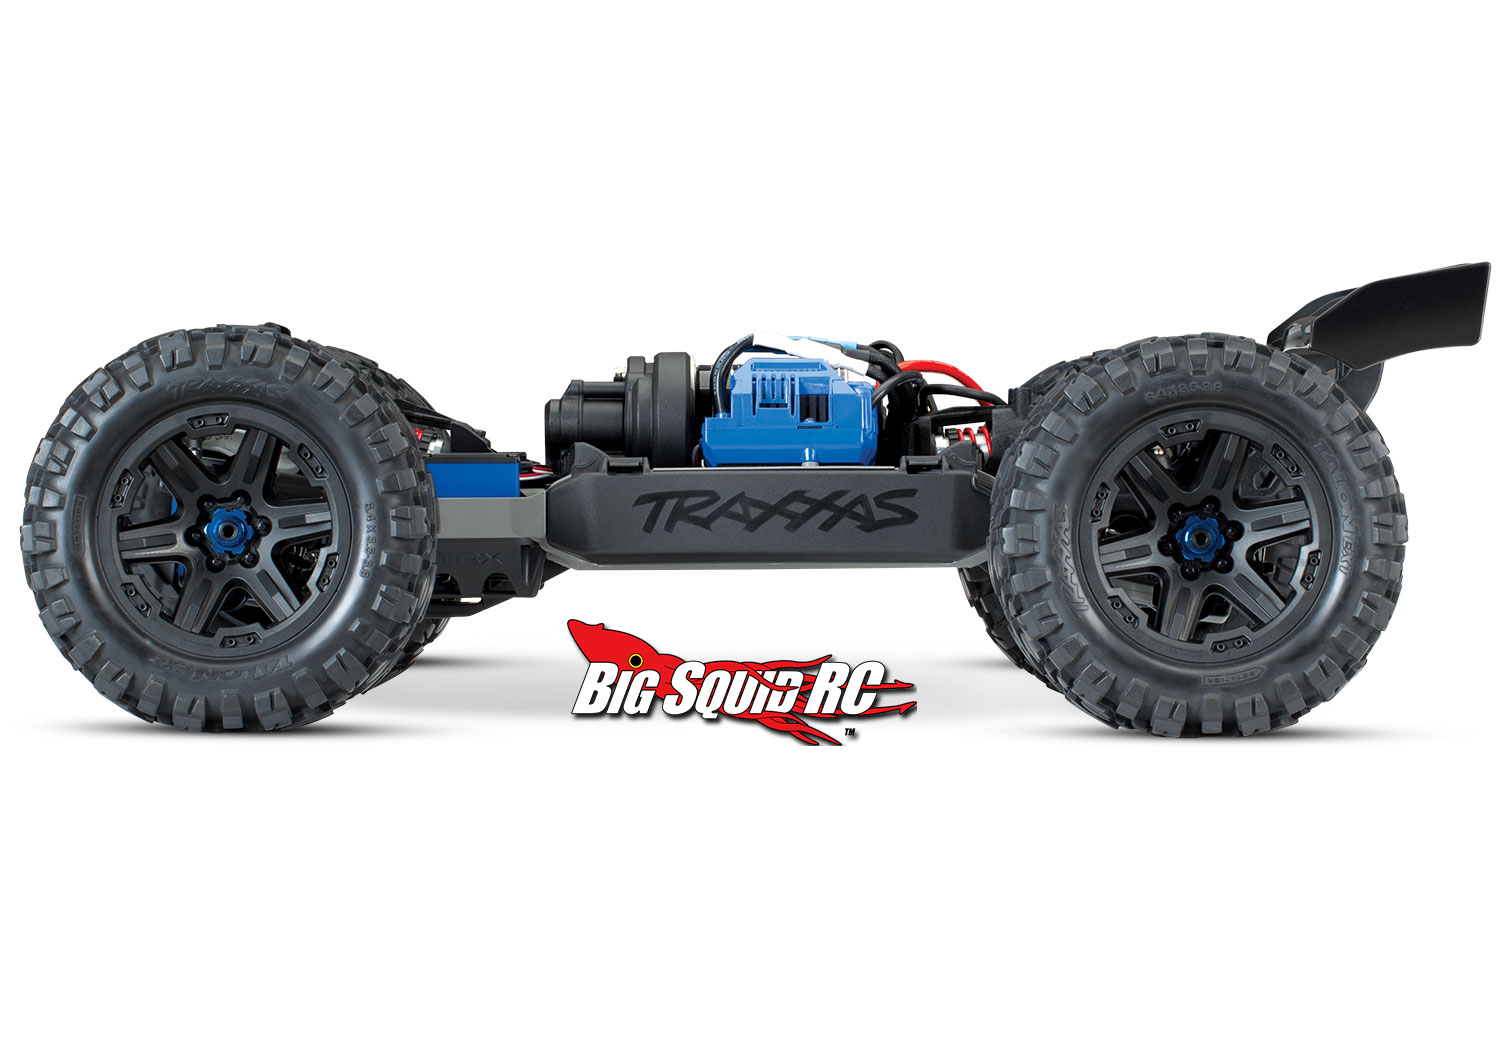 bestrc with Official New Traxxas E Revo 2 0 With Video on Best Rc Boat Rough Water likewise Best Rc Cars Under 200 besides Best Rc Semi Trucks moreover Official New Traxxas E Revo 2 0 With Video in addition Xtreme Racing Losi Rock Rey Carbon Fiber Body Kit.